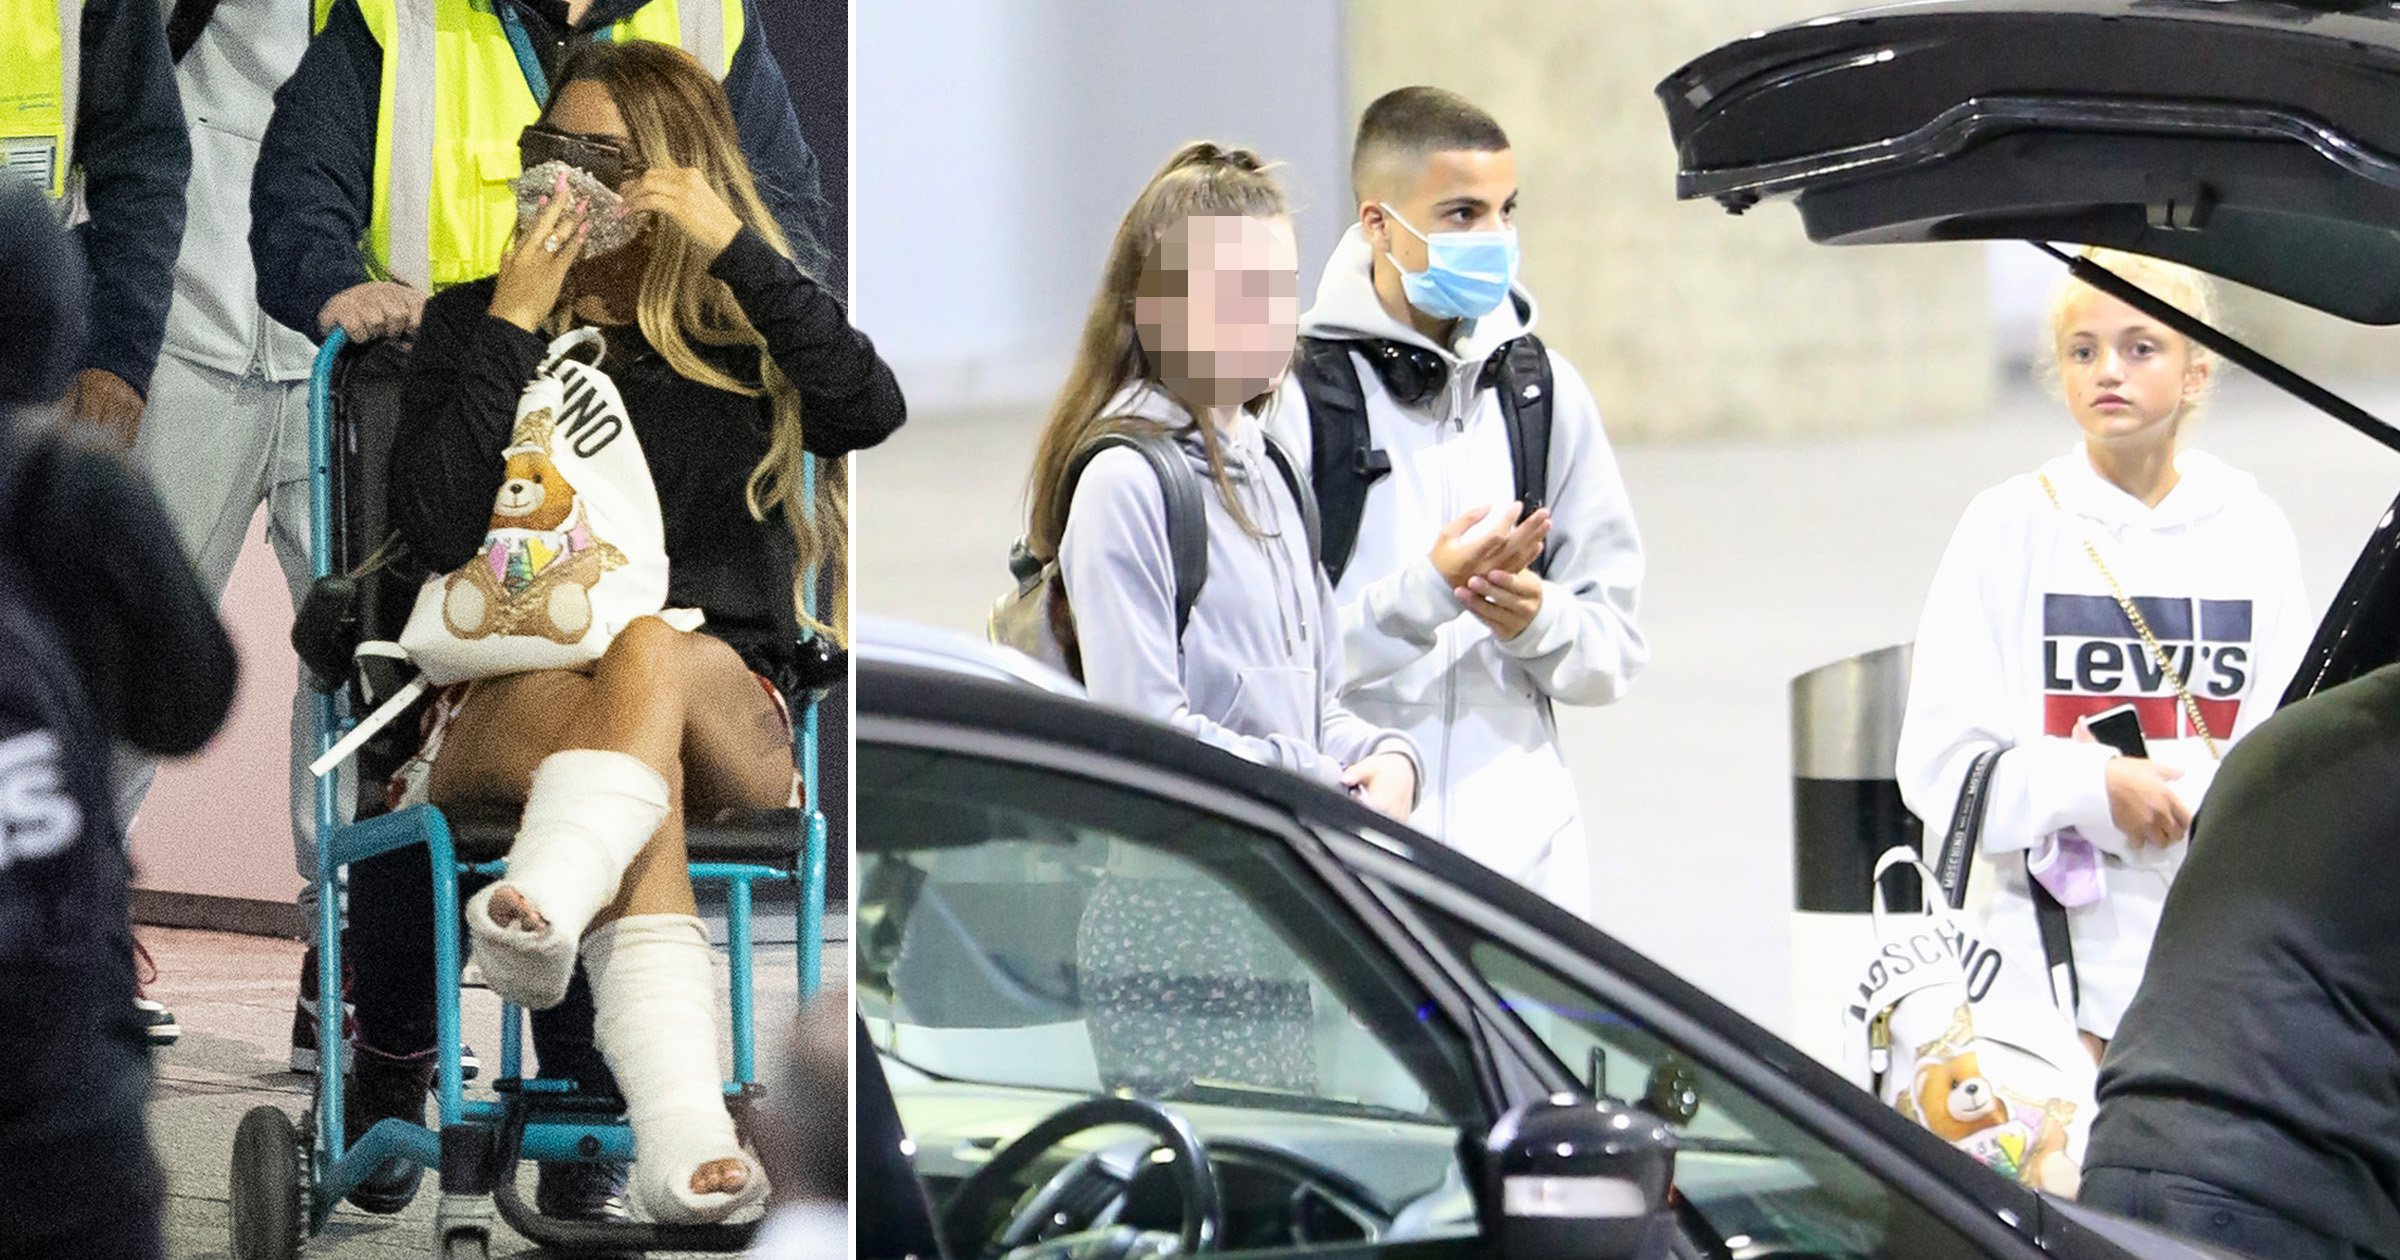 Katie Price Arrives Back In Uk In Wheelchair And Bandages After Horror Fall Big World Tale